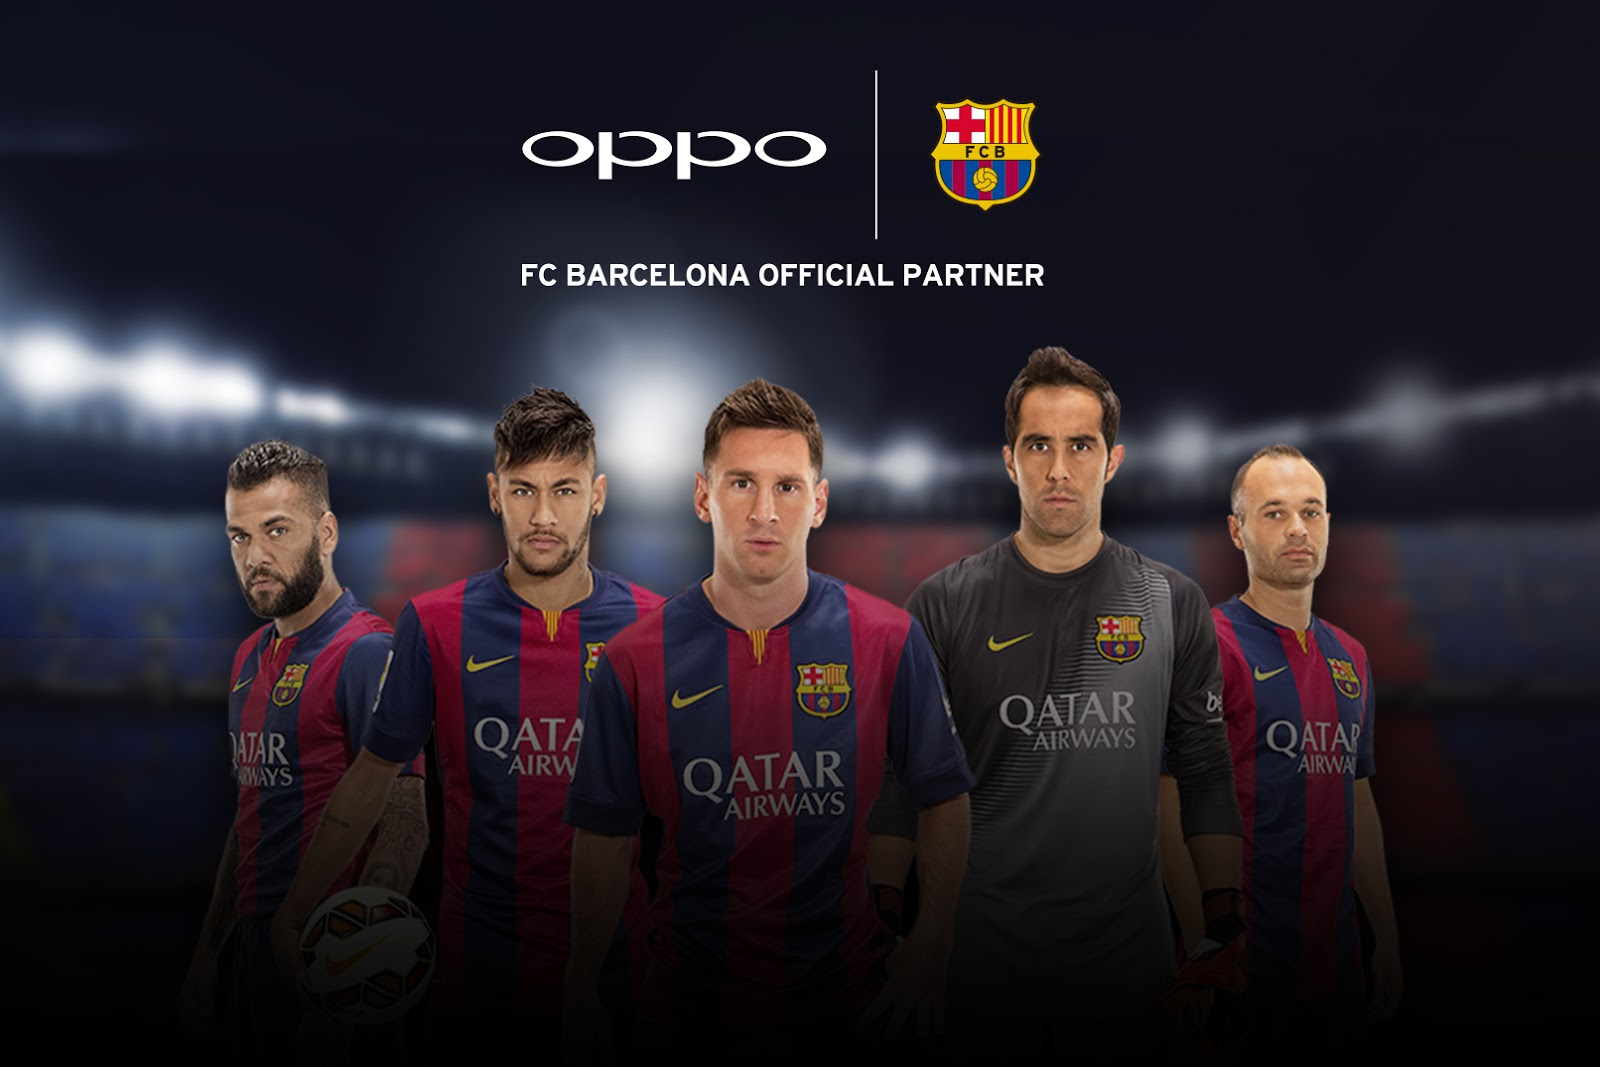 OPPO solidifies global presence with FC Barcelona partnership